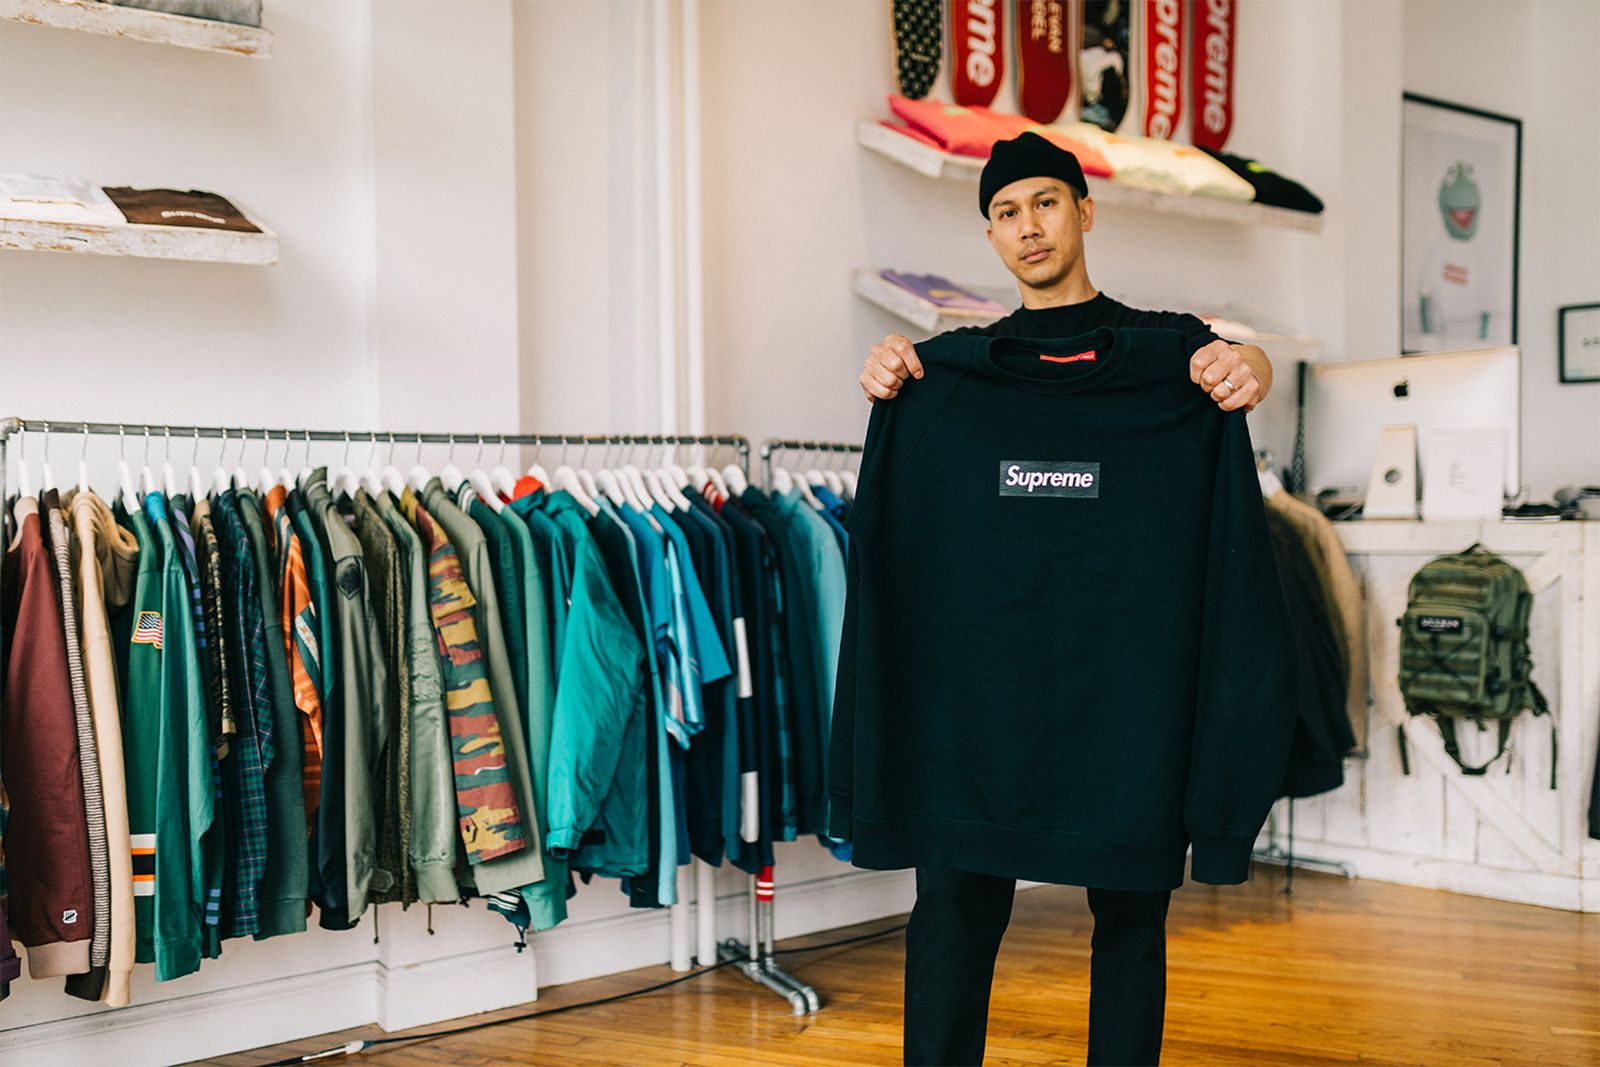 sizerun-supreme-reseller-new-england-06